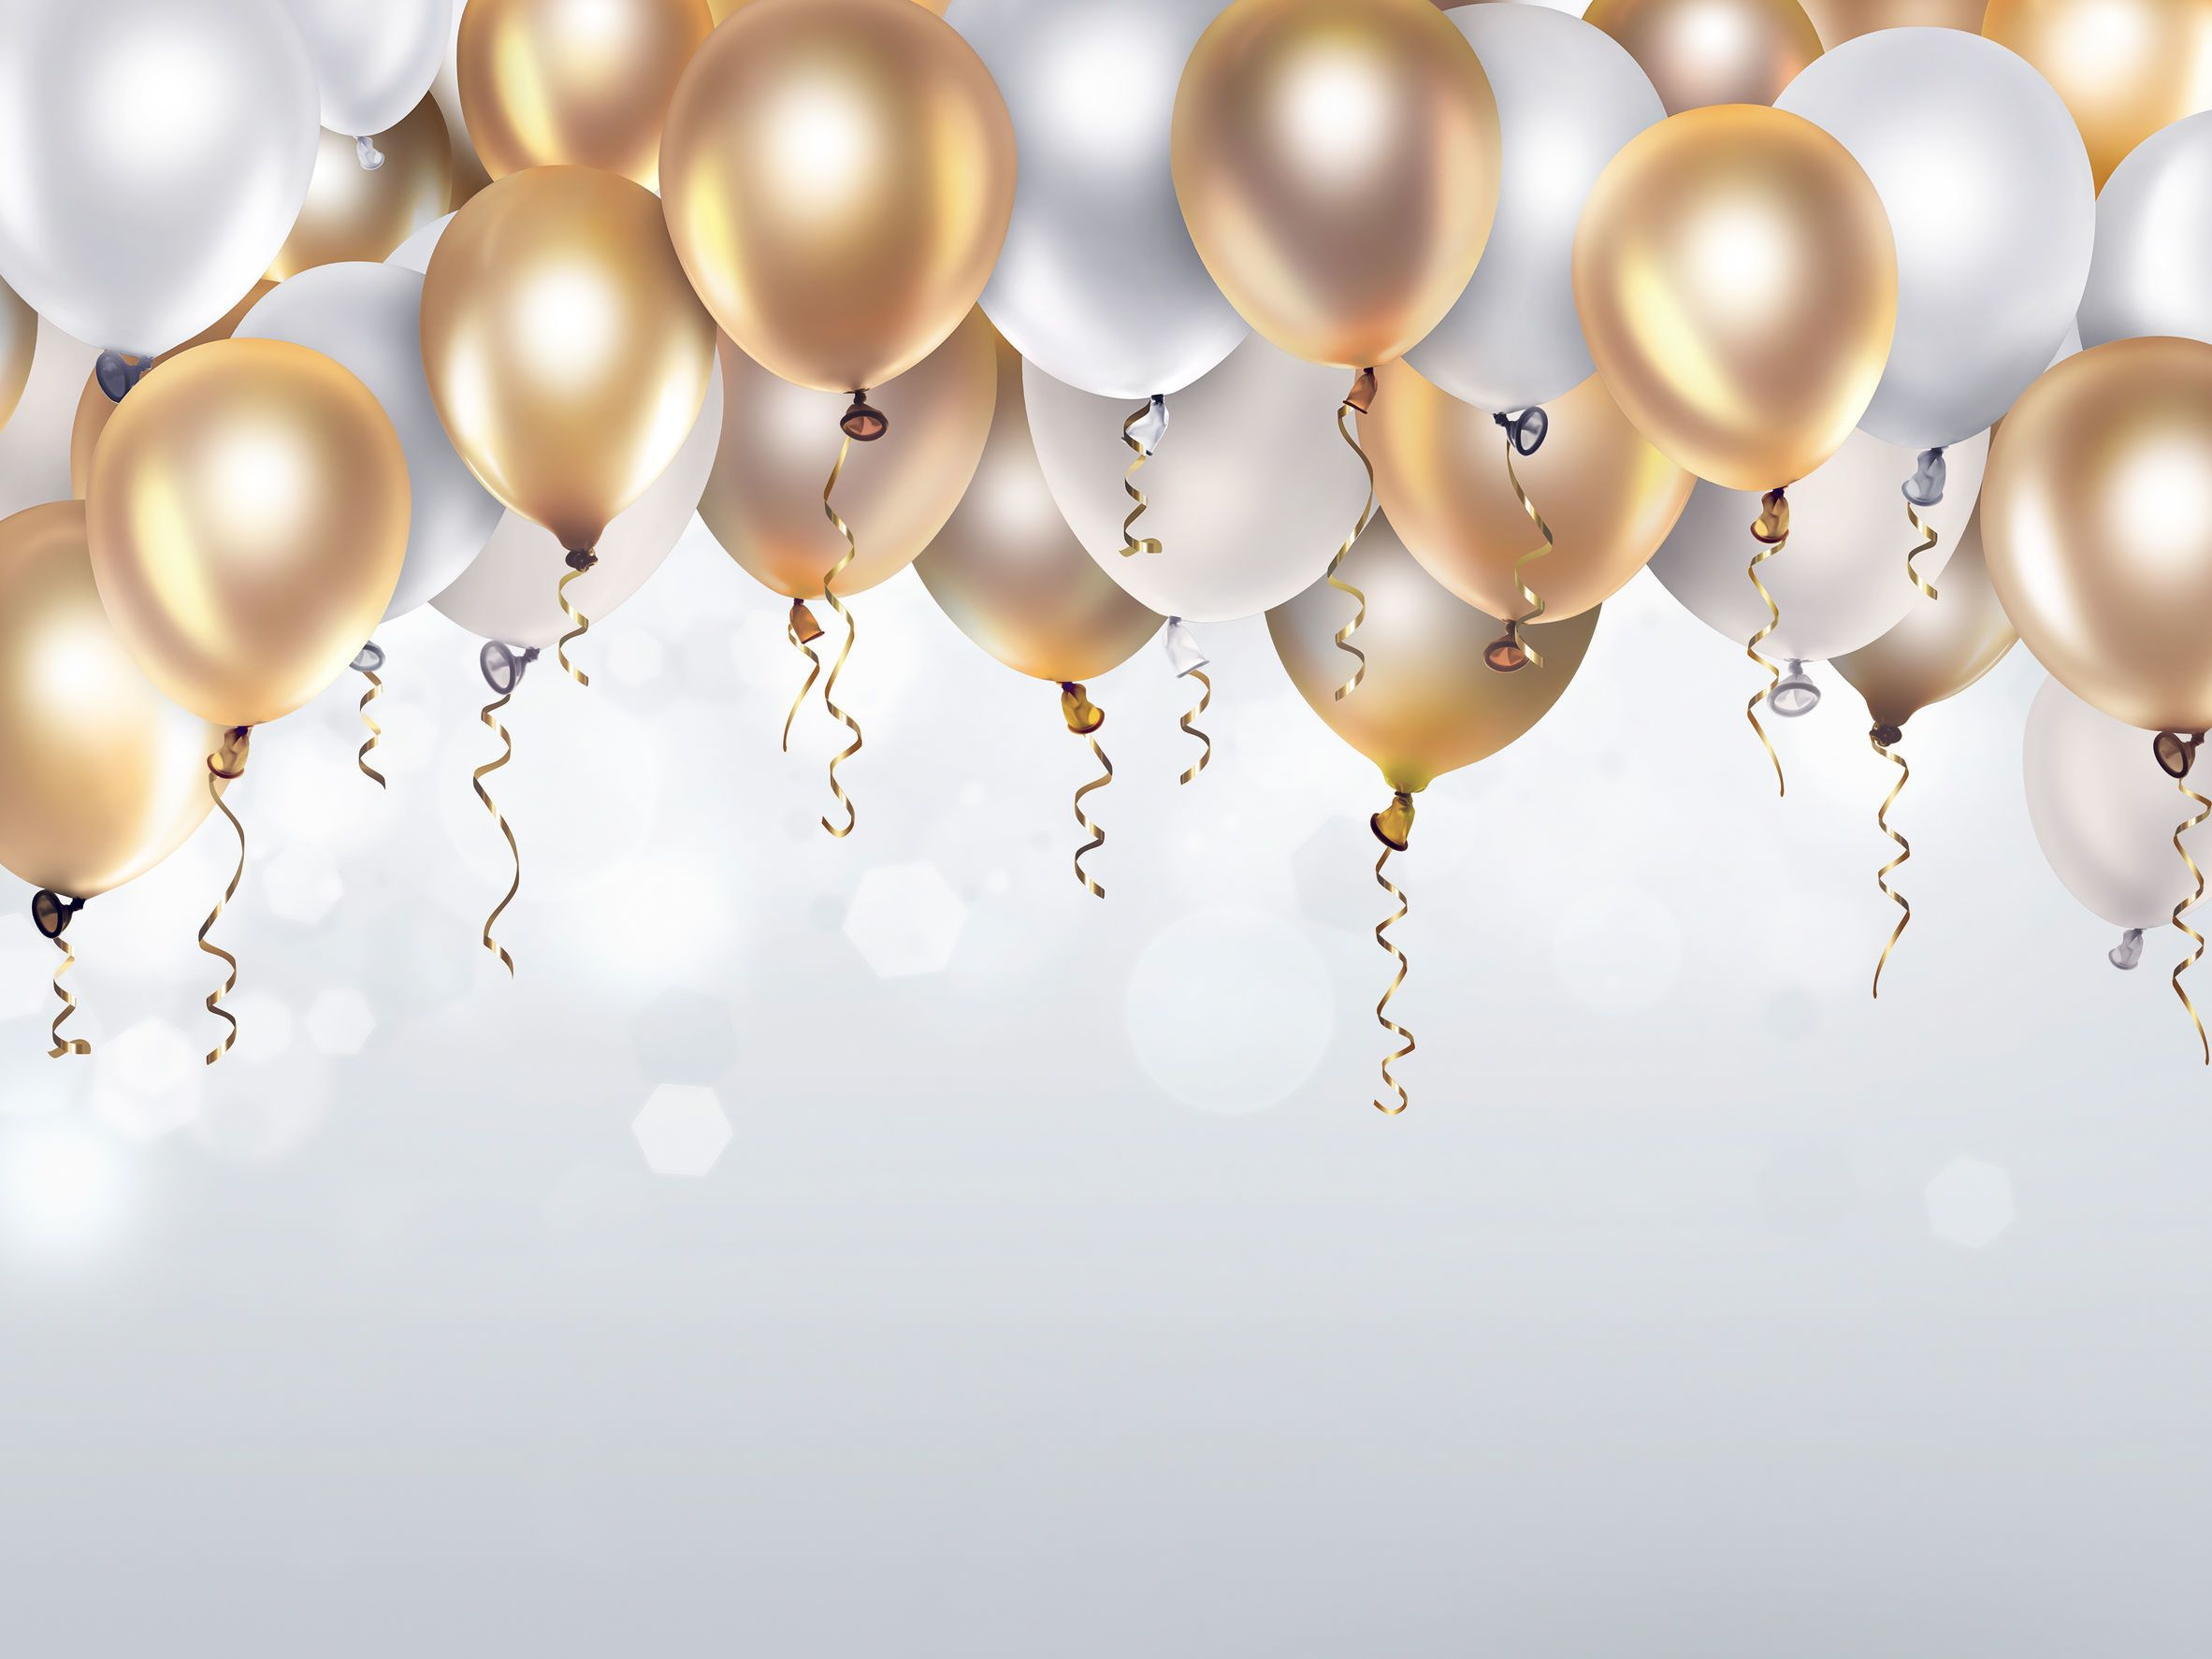 Gold Balloons Wallpapers Top Free Gold Balloons Backgrounds Wallpaperaccess